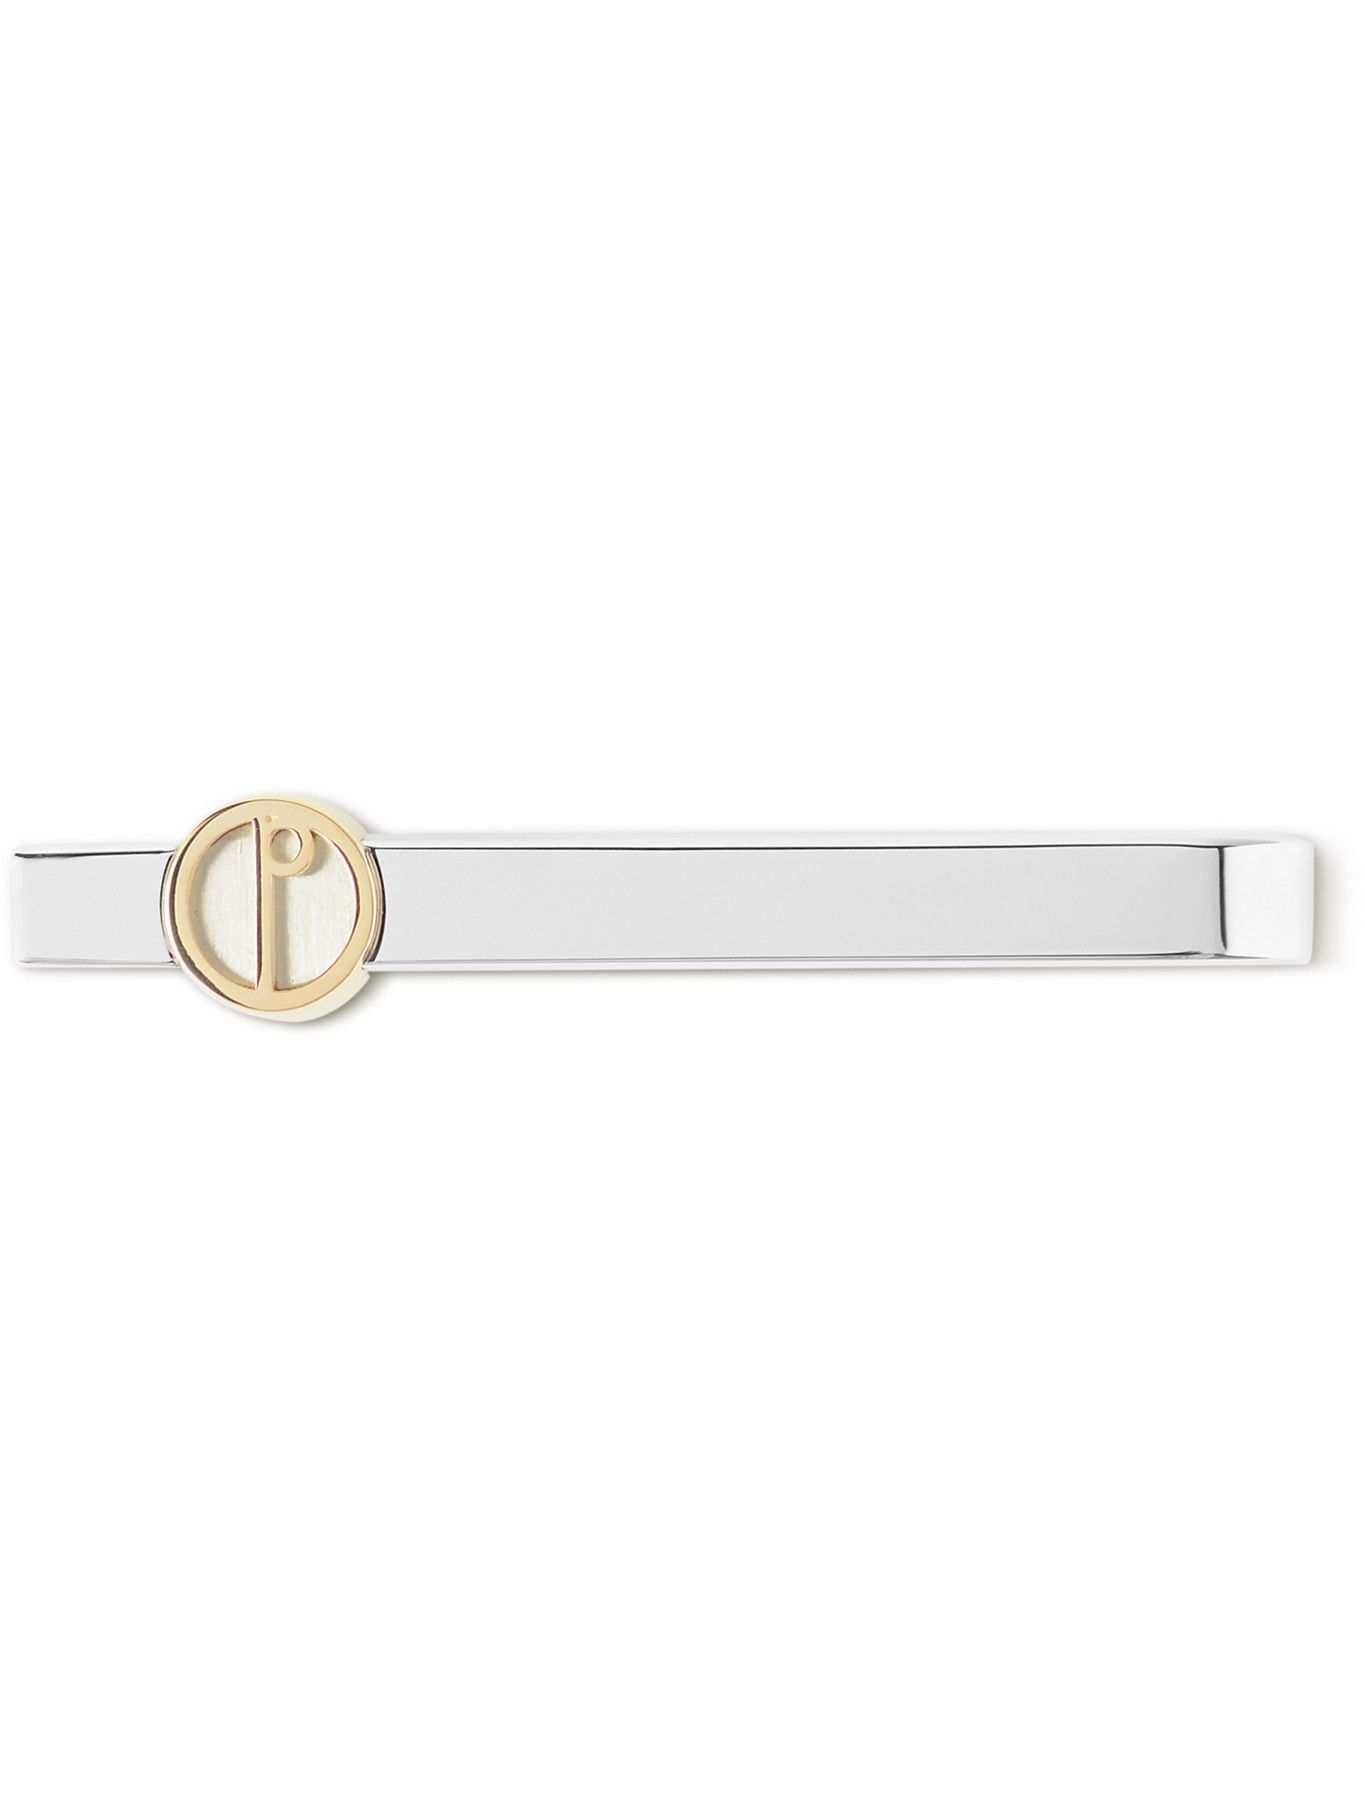 Dunhill - Rhodium-Plated and Gold-Tone Tie Clip